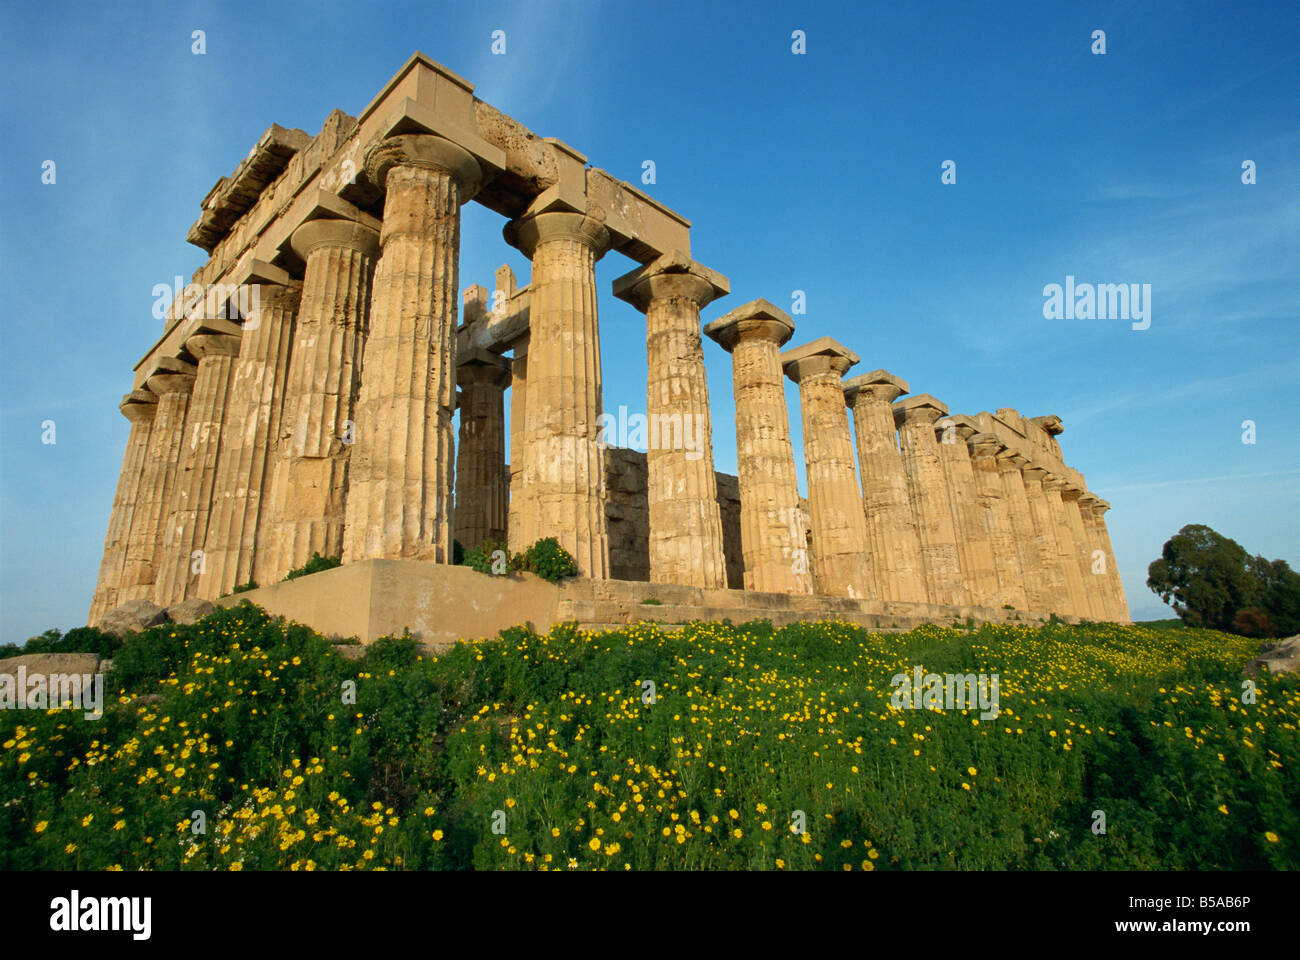 Temple of Hera dating from the 5th century BC Selinunte Sicily Italy Europe - Stock Image